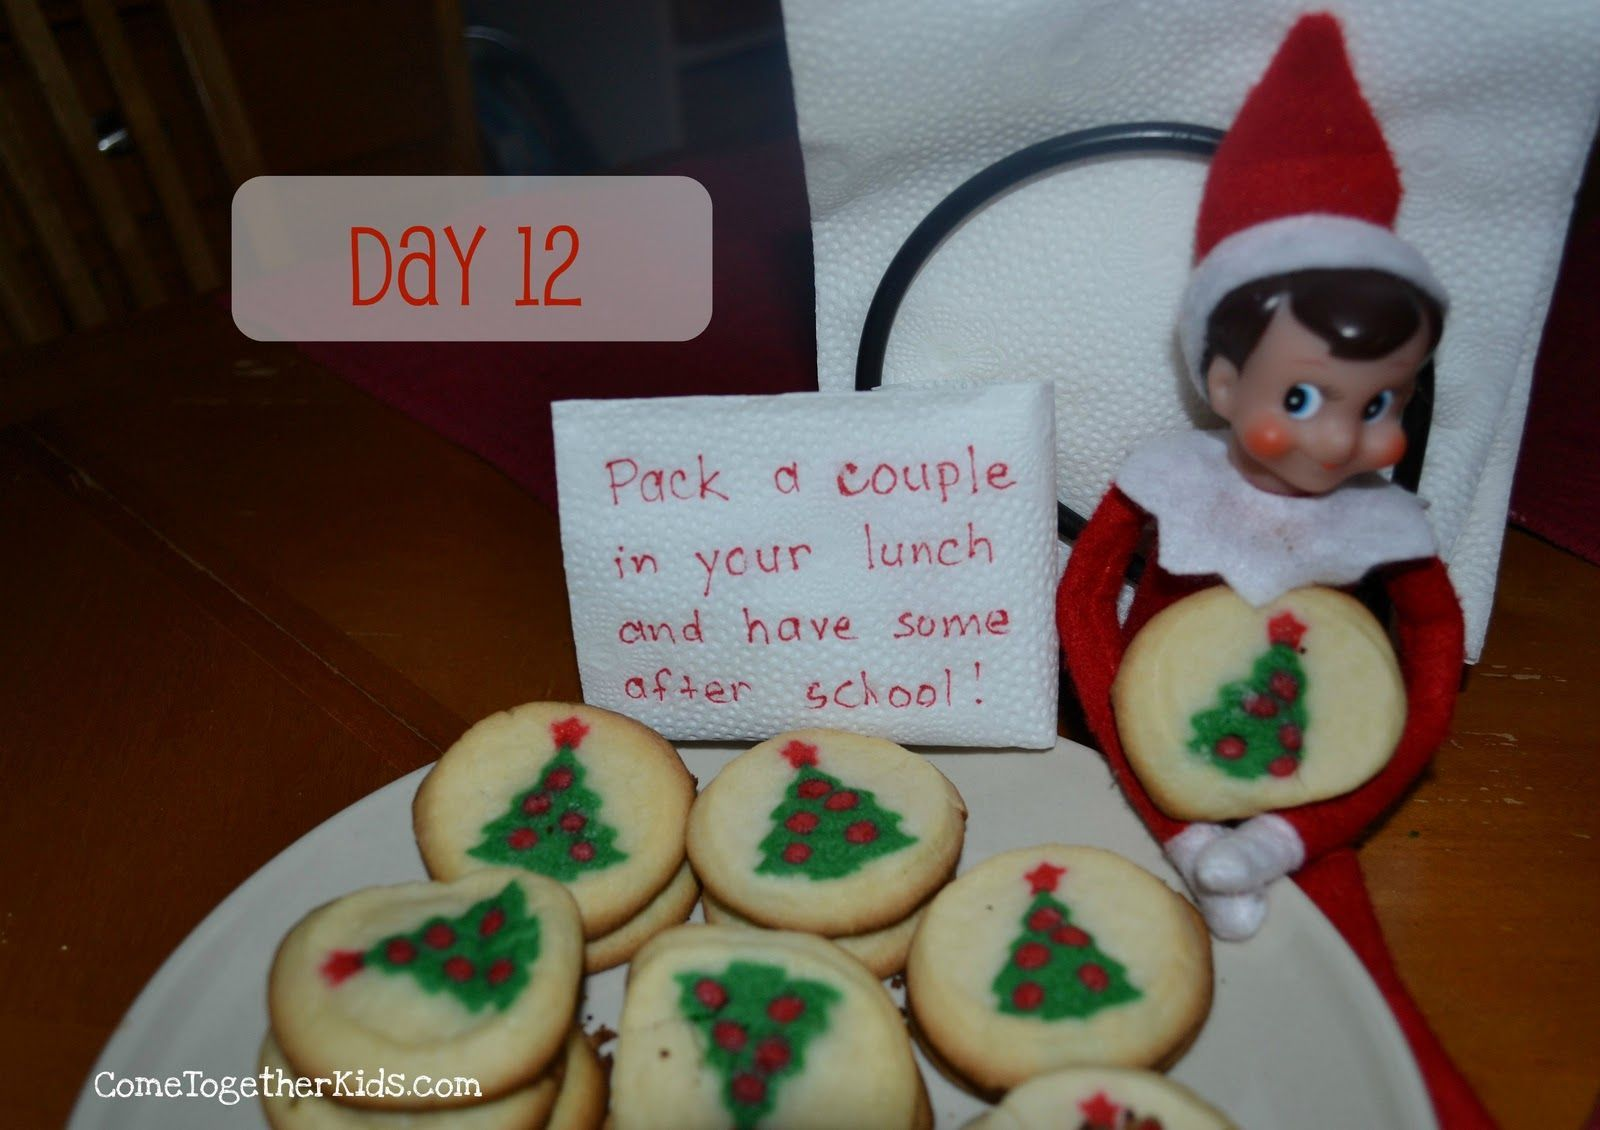 Newest Photographs Come Together Kids: Elf on the Shelf Ideas ~ Week 2  Concepts   Come Together Kids: Elf on the Shelf Ideas ~ Week 2  #Concepts #Elf #Ideas #Kids #Newest #Photographs #Shelf #Week #naughtyelfontheshelfideas